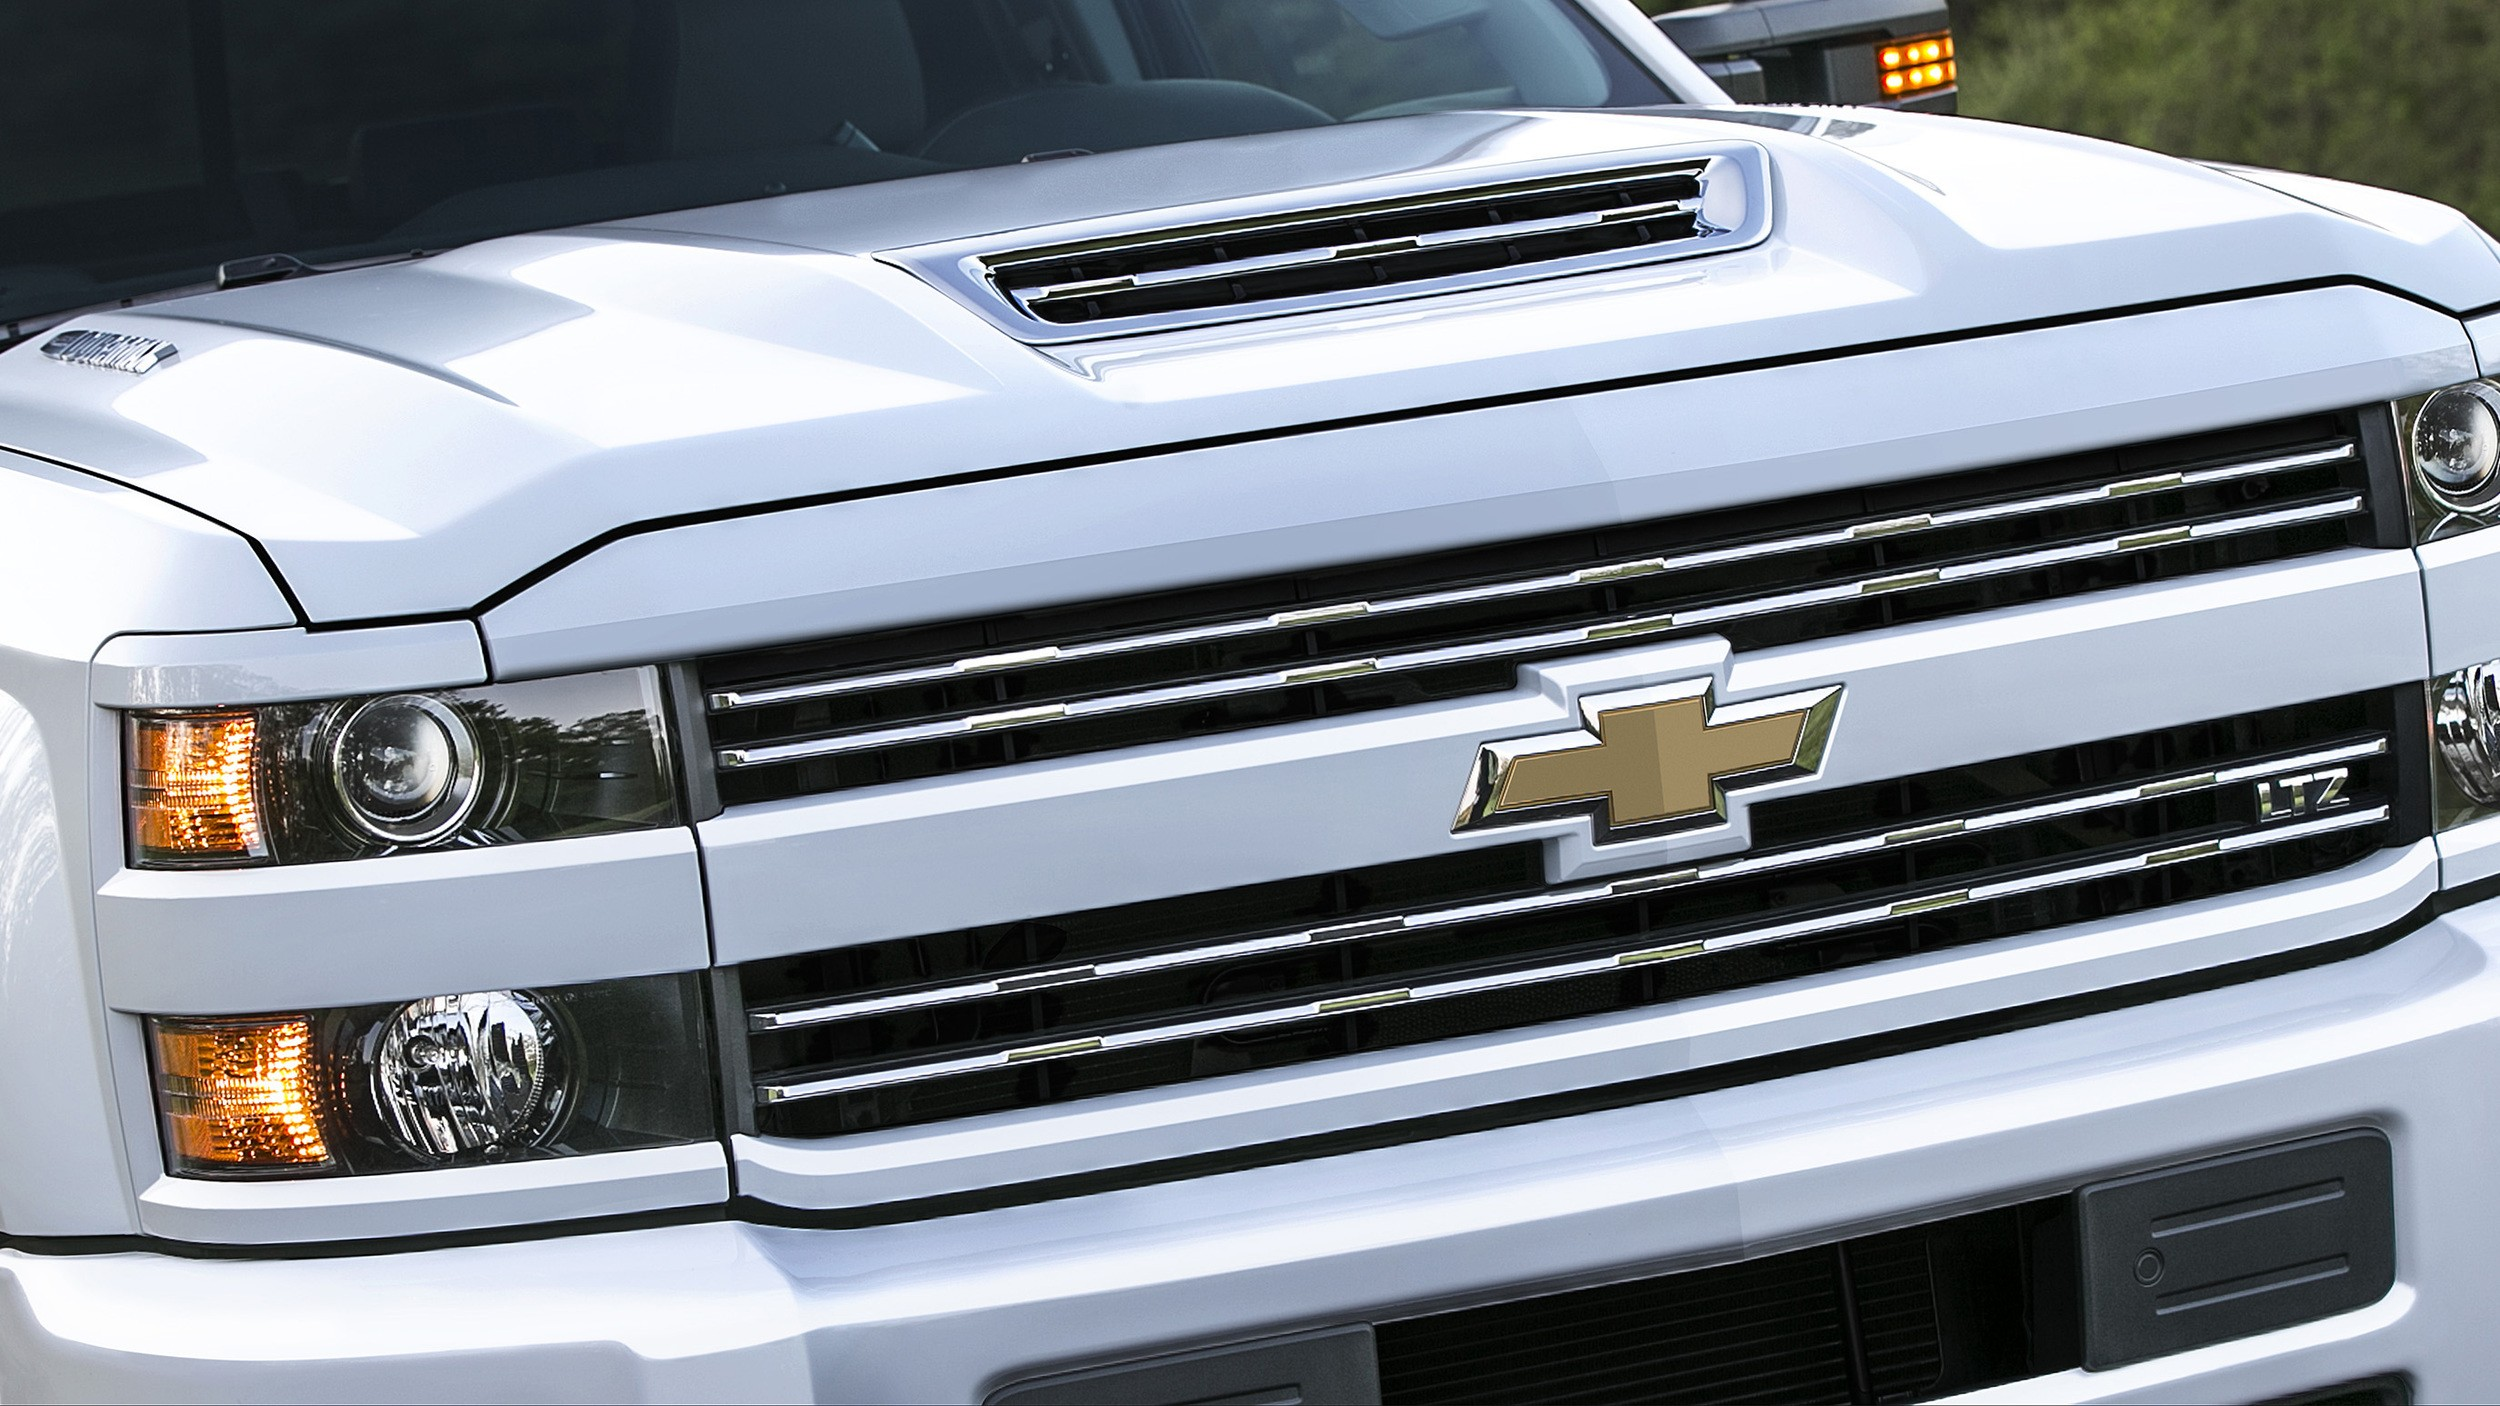 2017 Chevrolet Silverado 2500 Hd Boasts Functional Hood